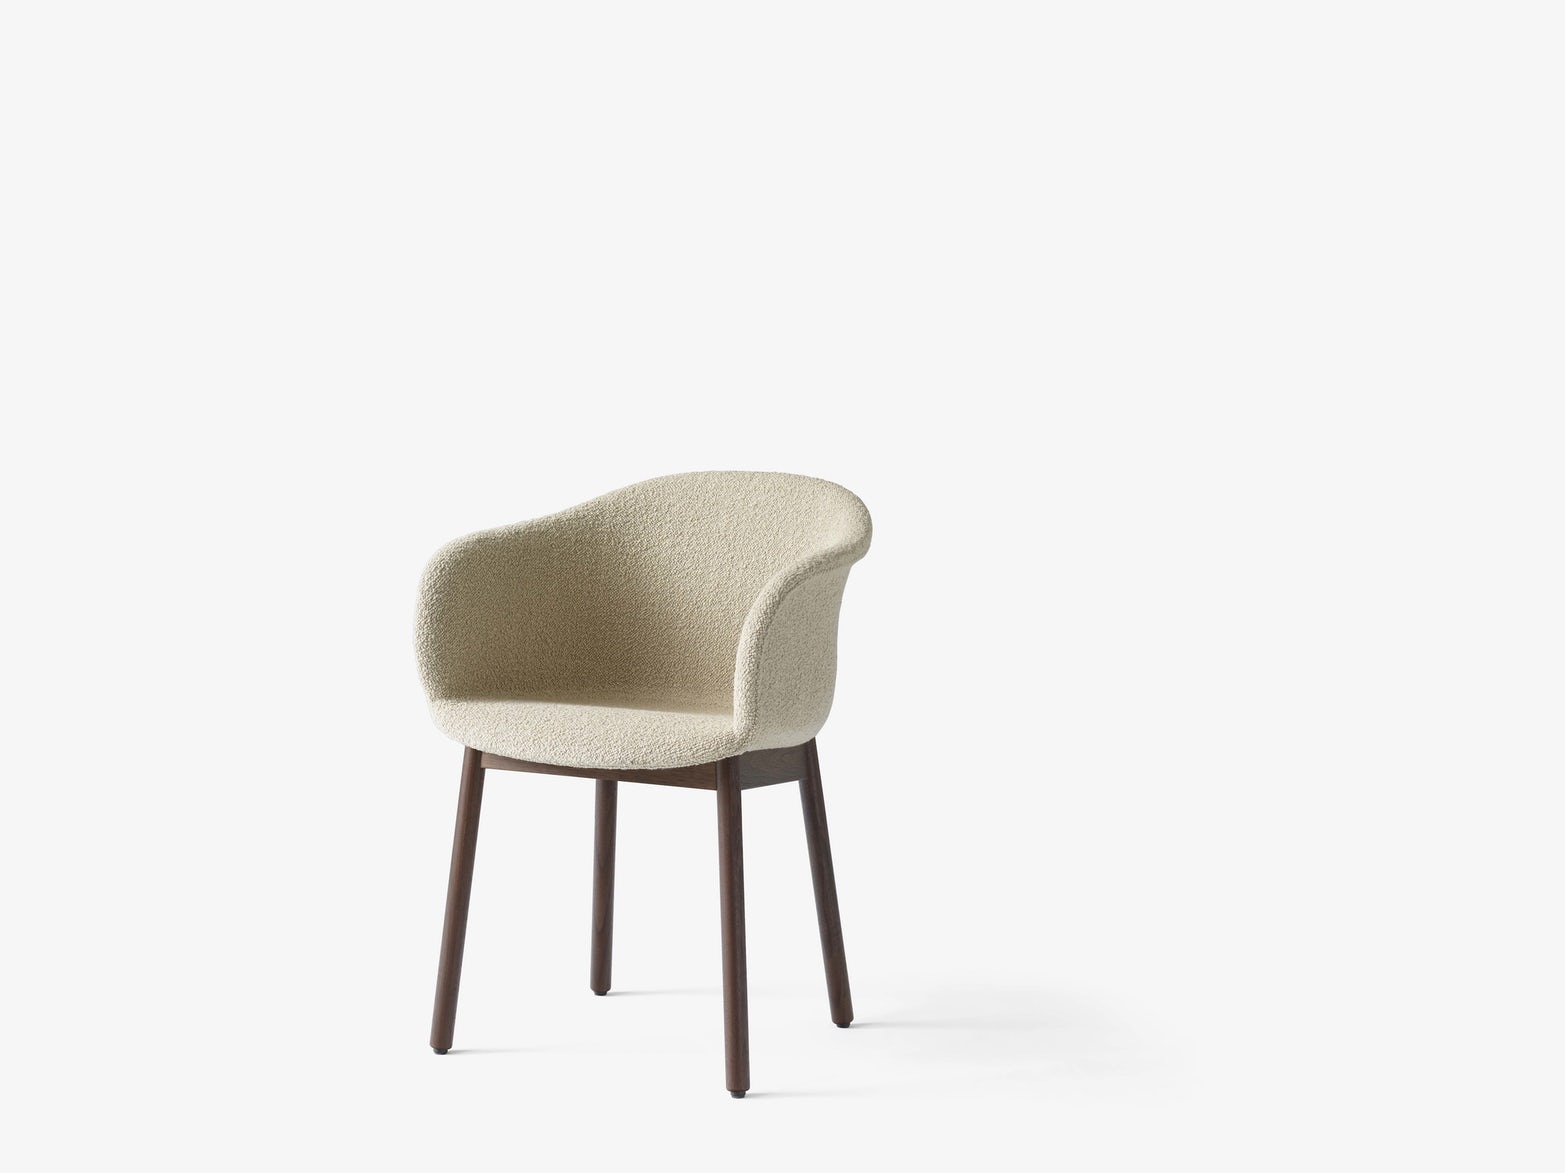 Elefy jh31 chair jaime hayon andtradition 5